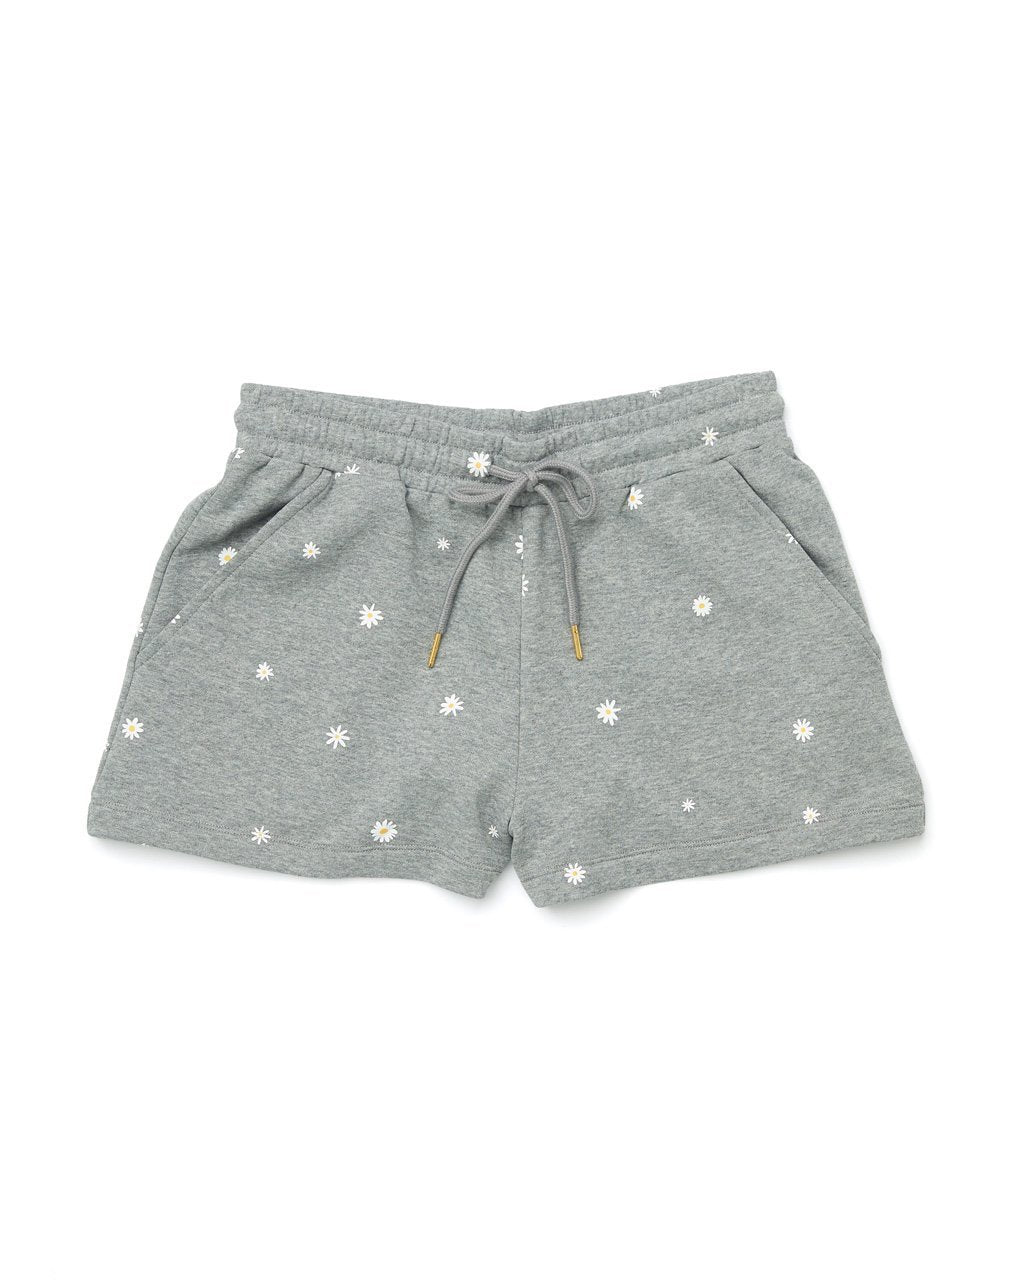 Grey cotton shorts with pockets and a scatter dot daisy pattern all over